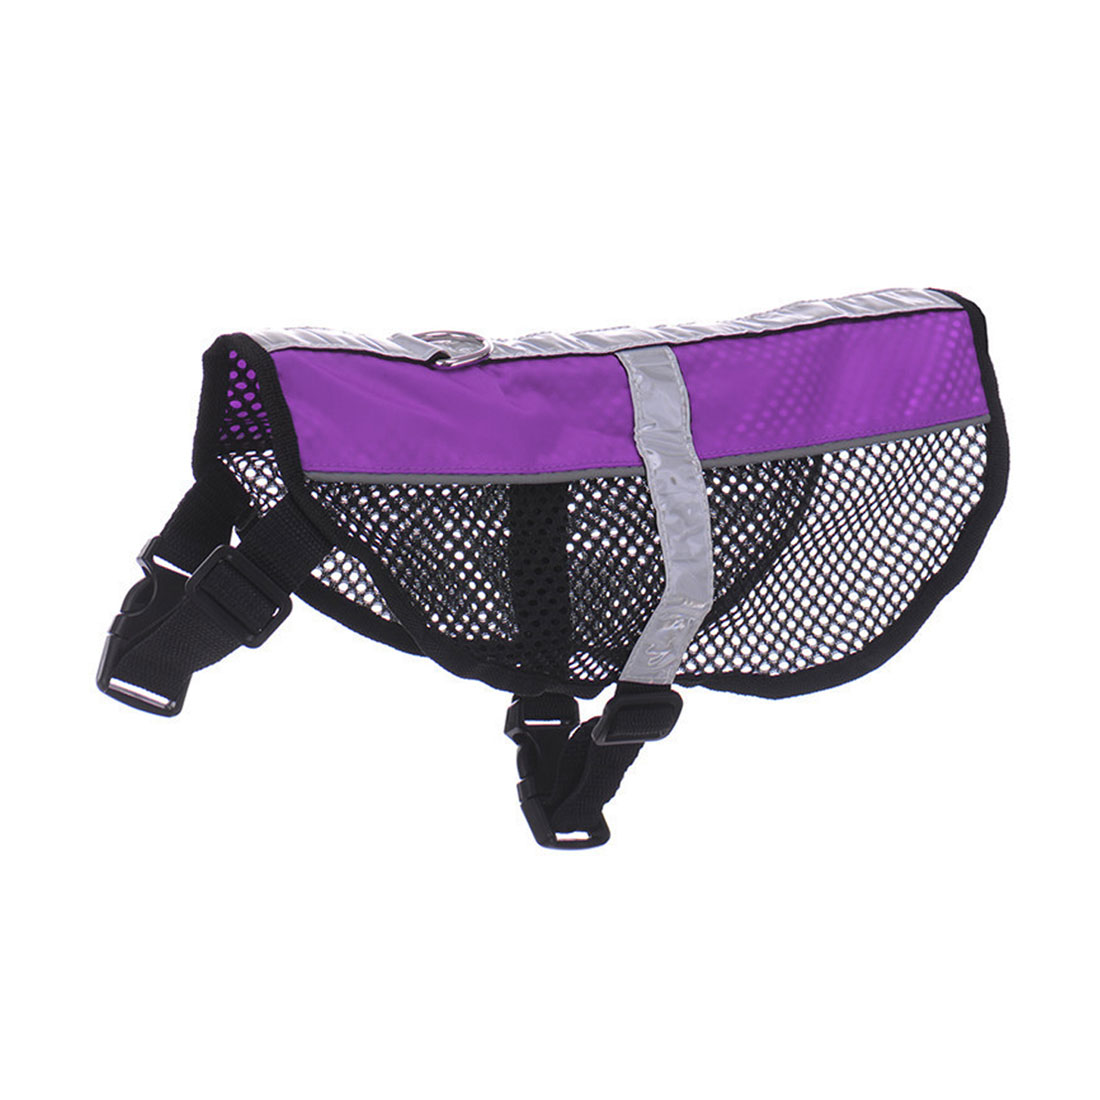 Service Dog Mesh Vest Harness Cool Comfort Nylon High Visibility Safety Jacket Purple M